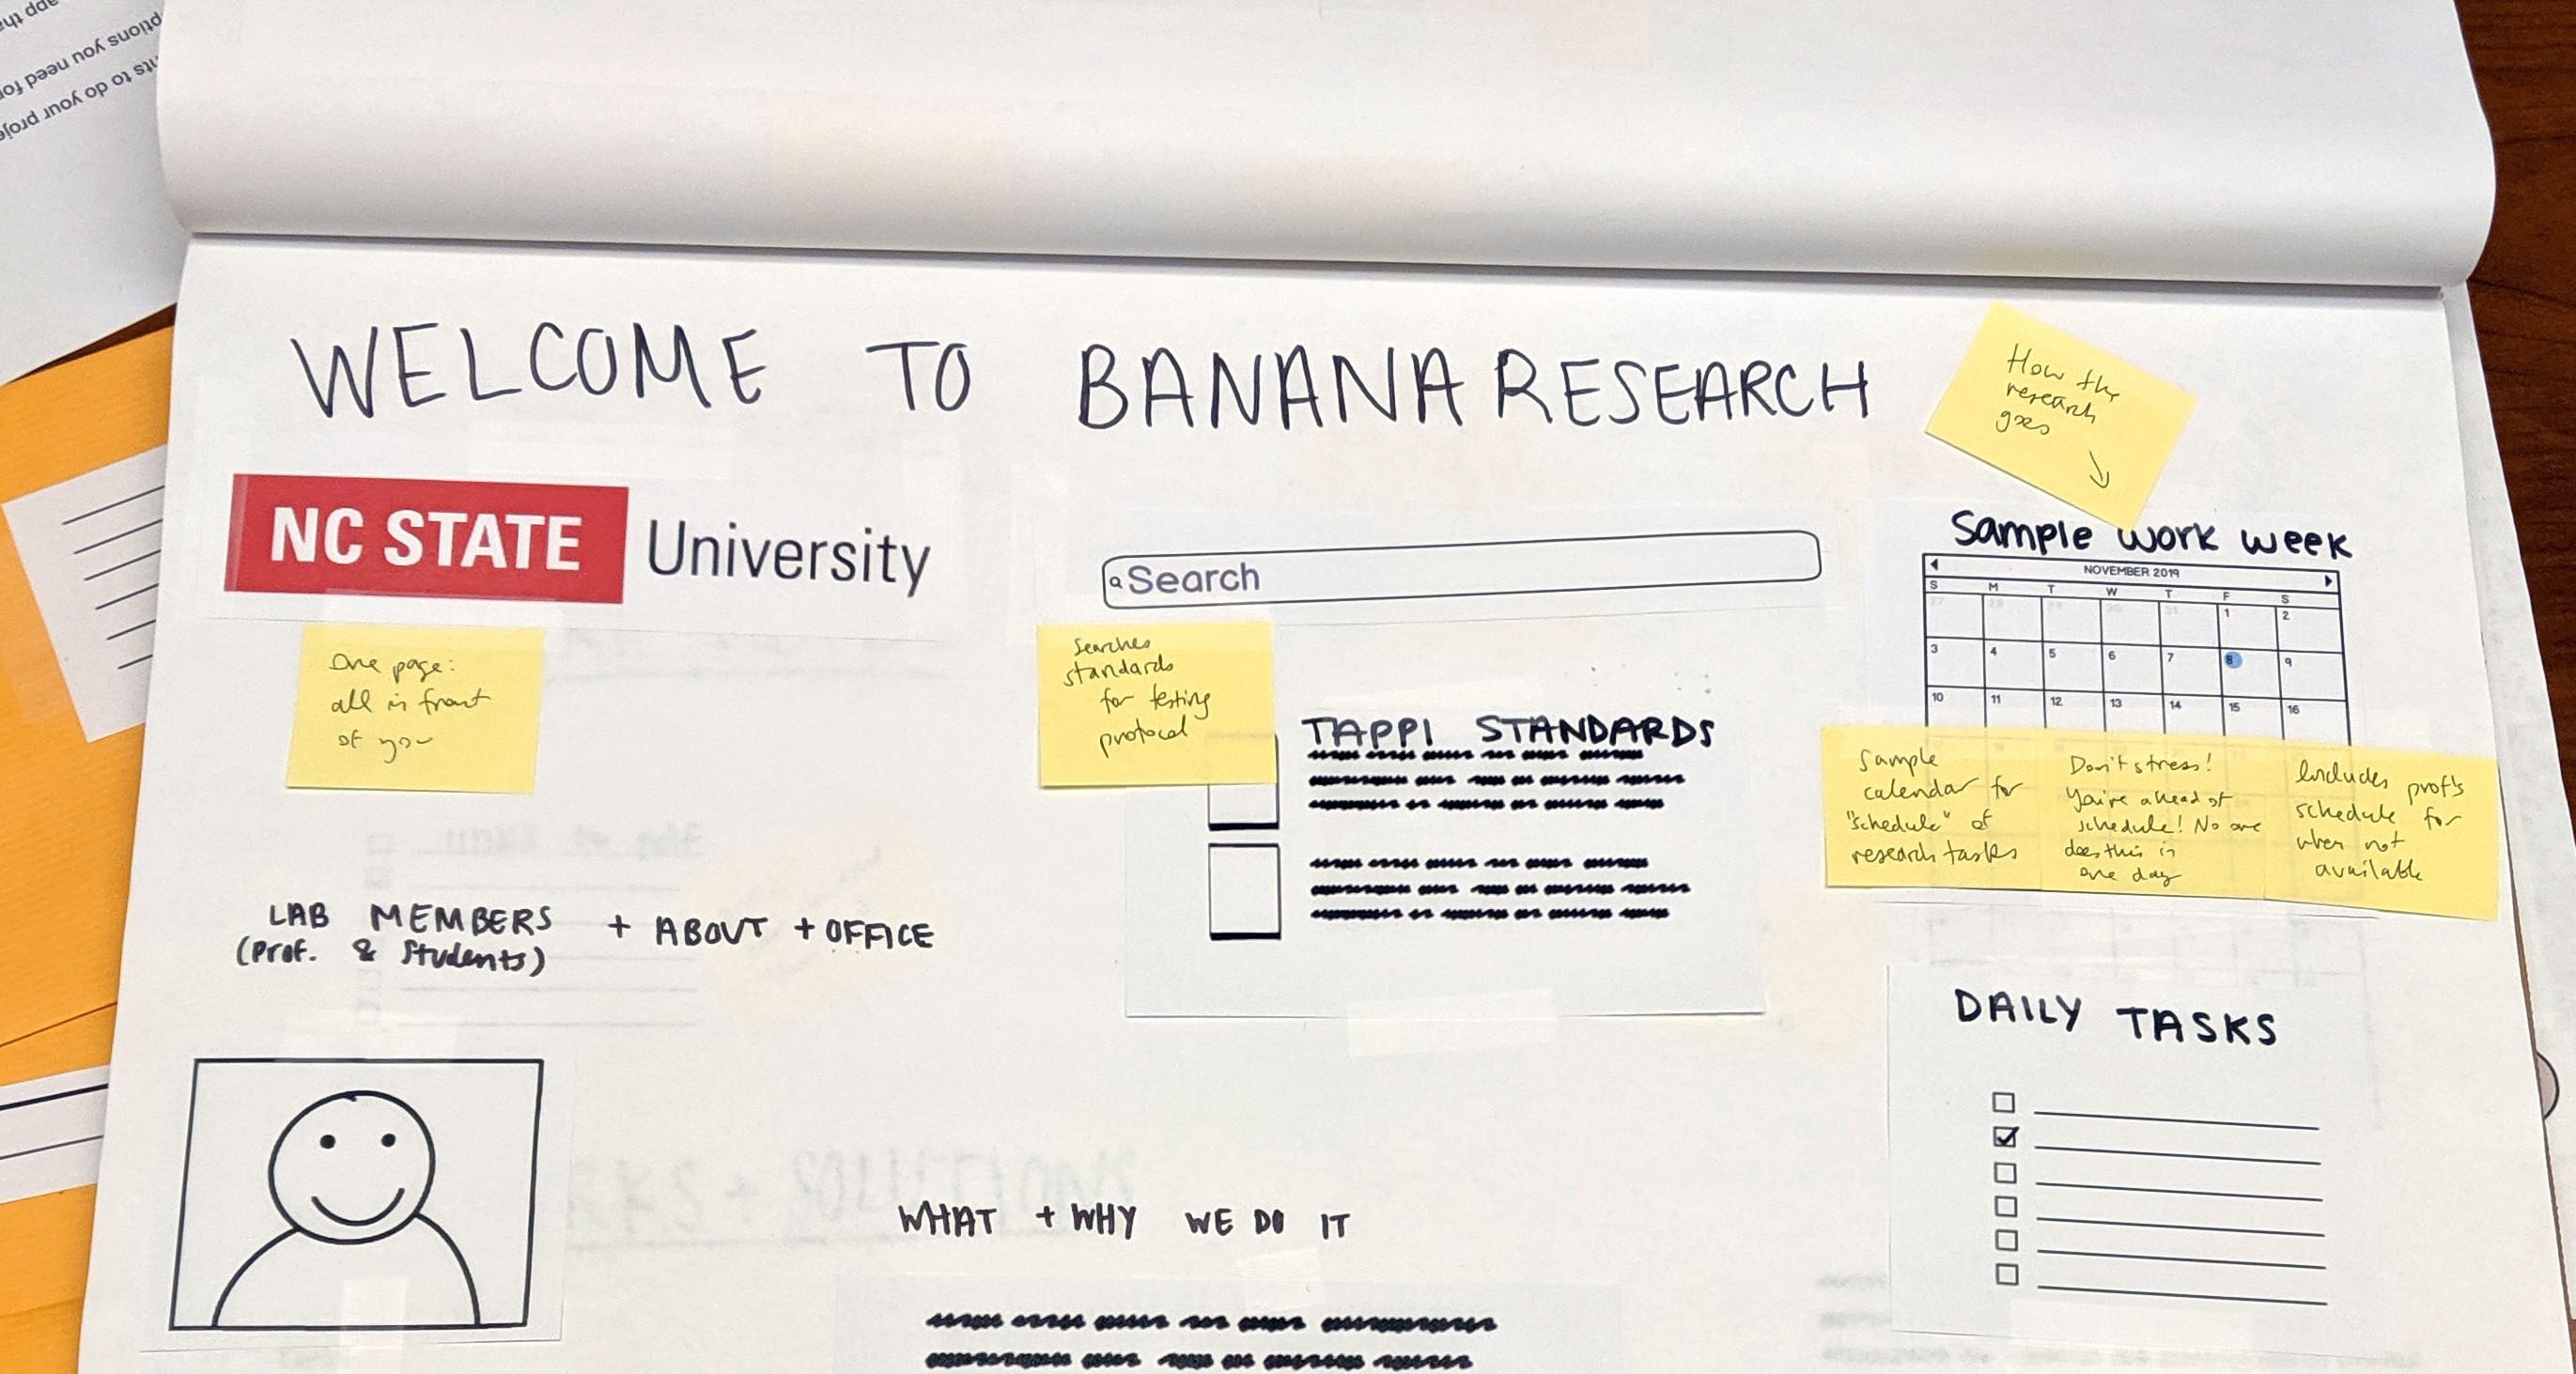 Sketchy prototype of a web page on a piece of paper. The title is Banana Research, and the page includes a search box, introductory text, and a happy face